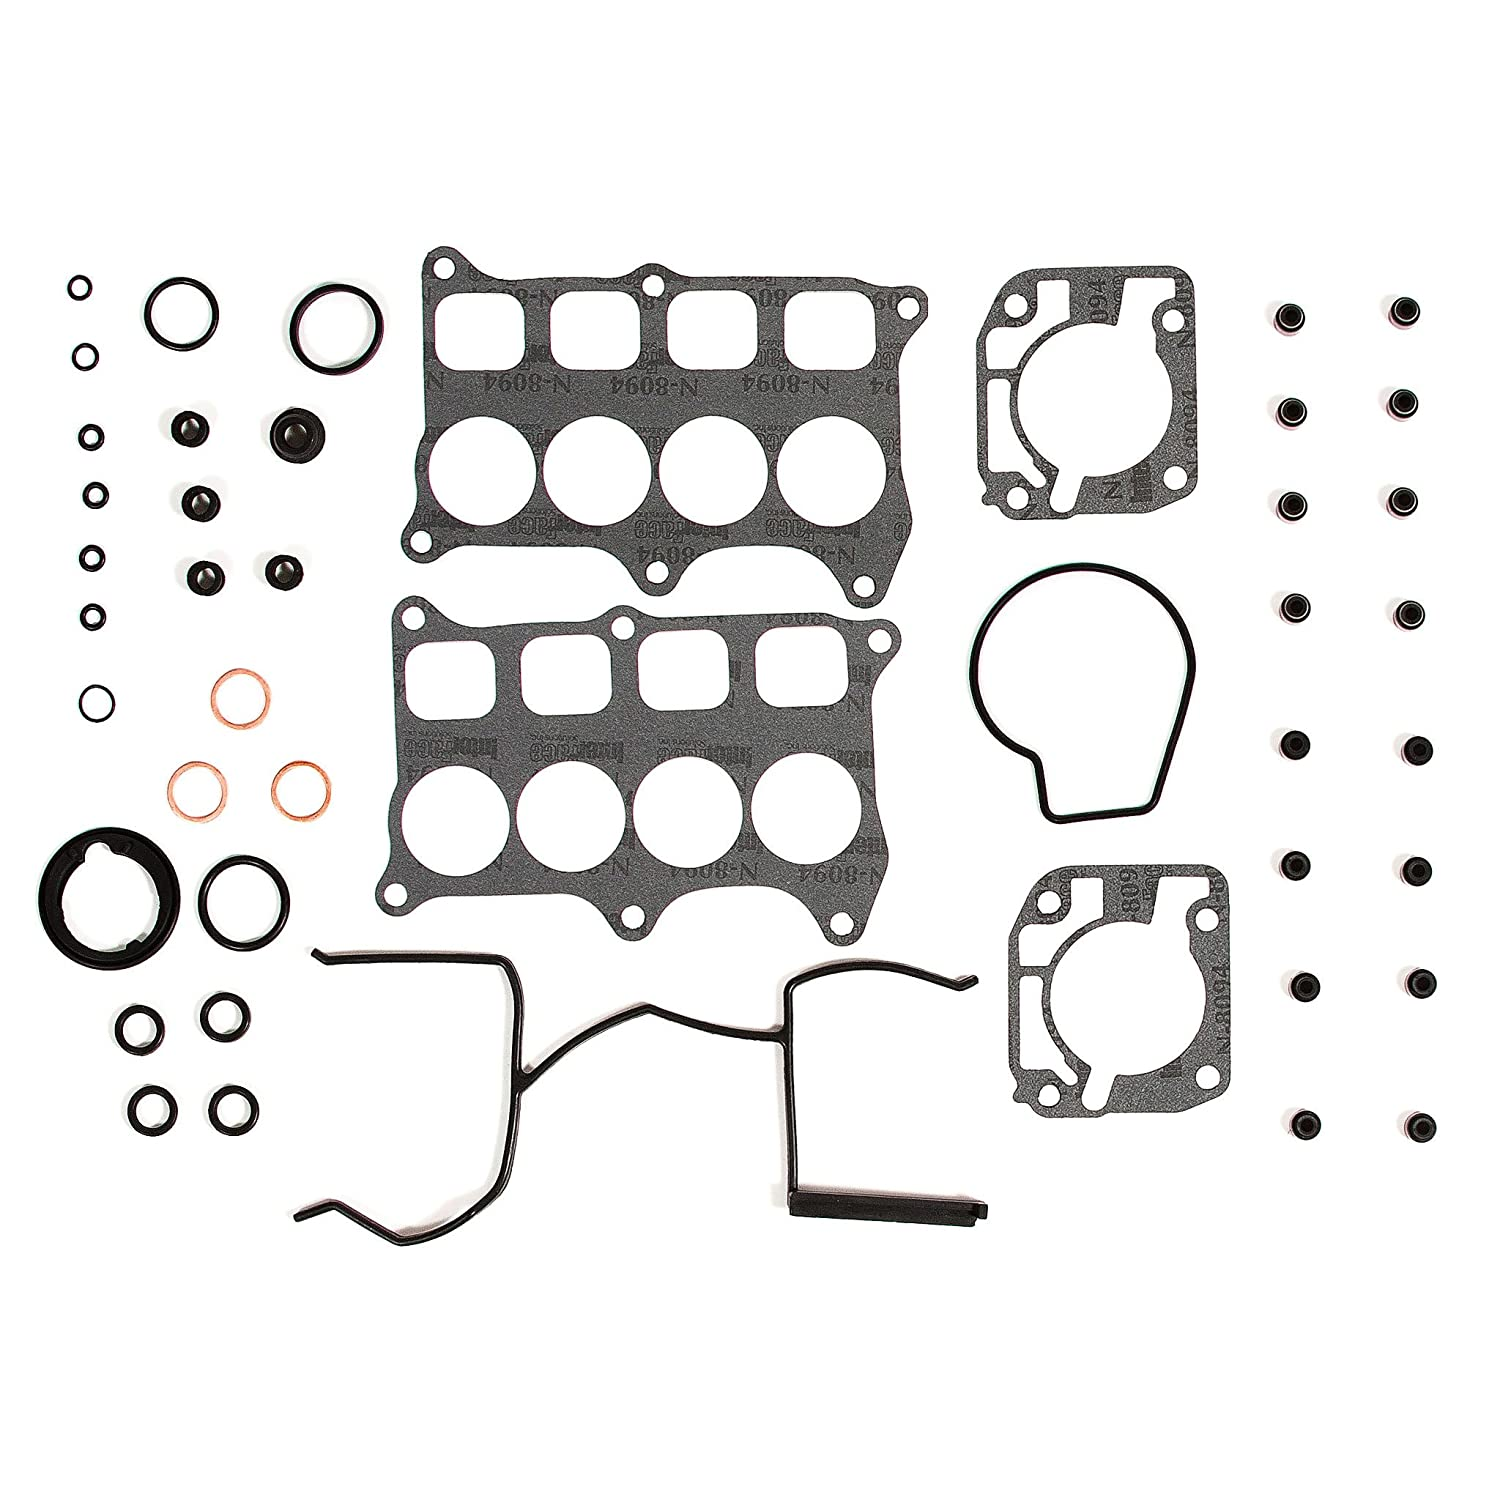 Head Gasket Set Timing Belt Kit Fit 88-89 Acura Integra 1.6 DOHC 16V D16A1